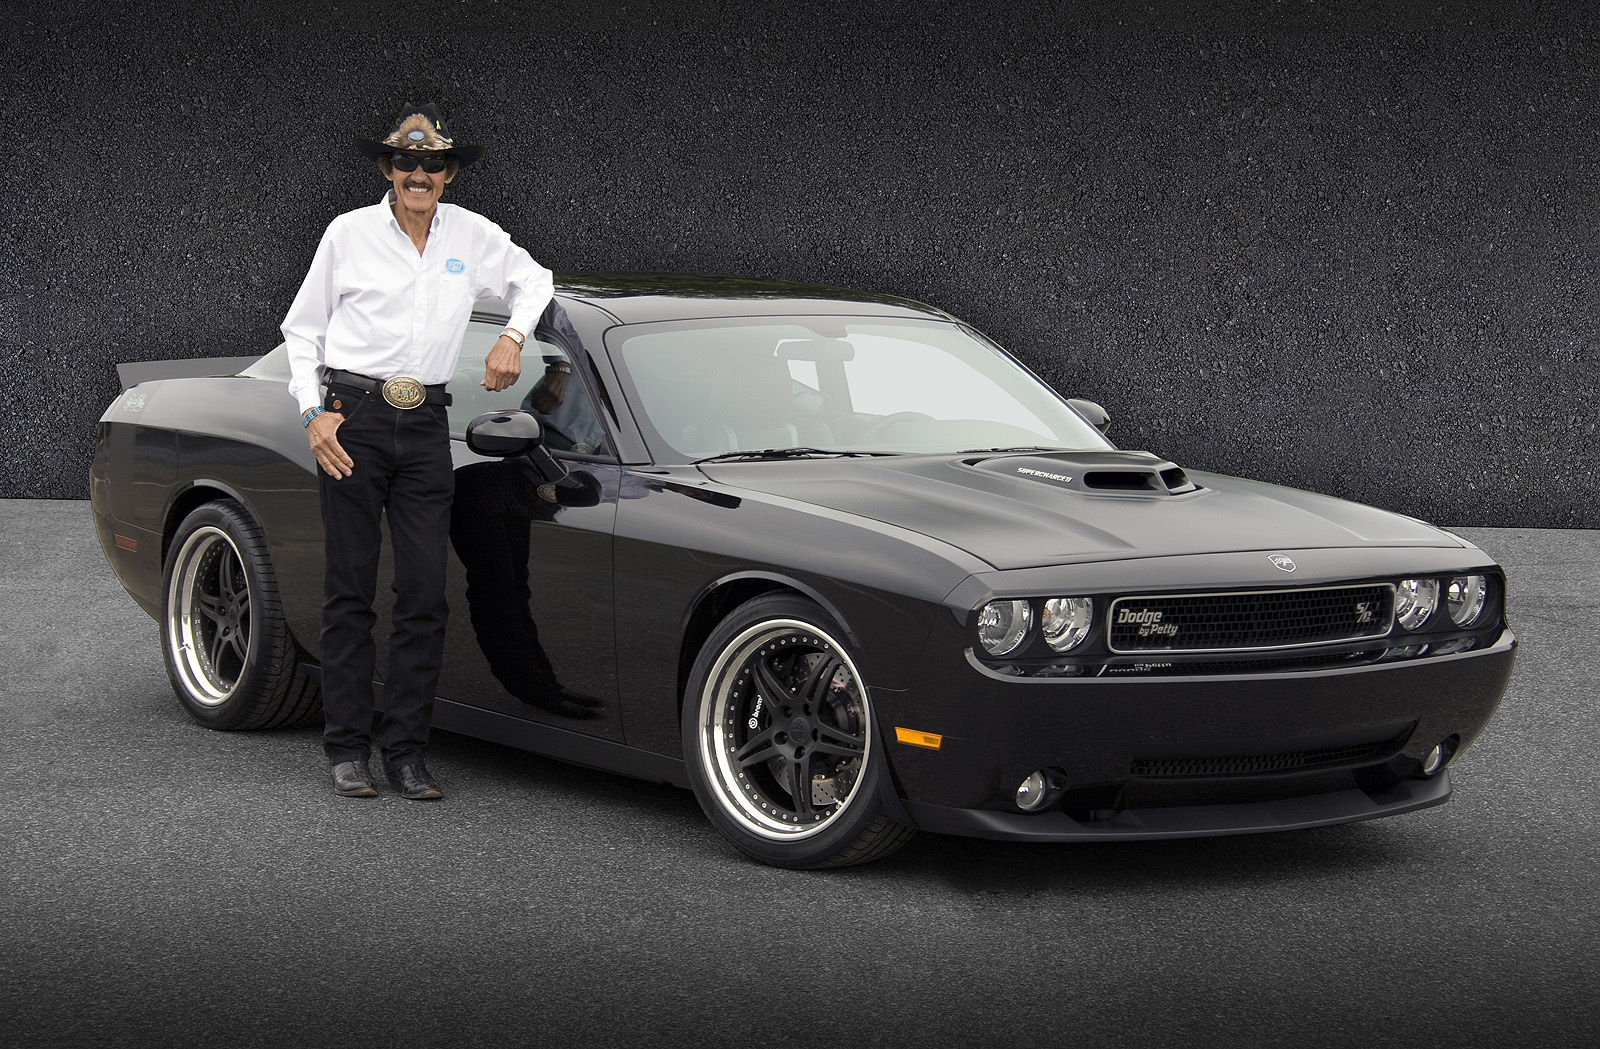 Dodge Challenger Petty Edition >> Richard Petty Signature Series Dodge Challenger   AmcarGuide.com - American muscle car guide